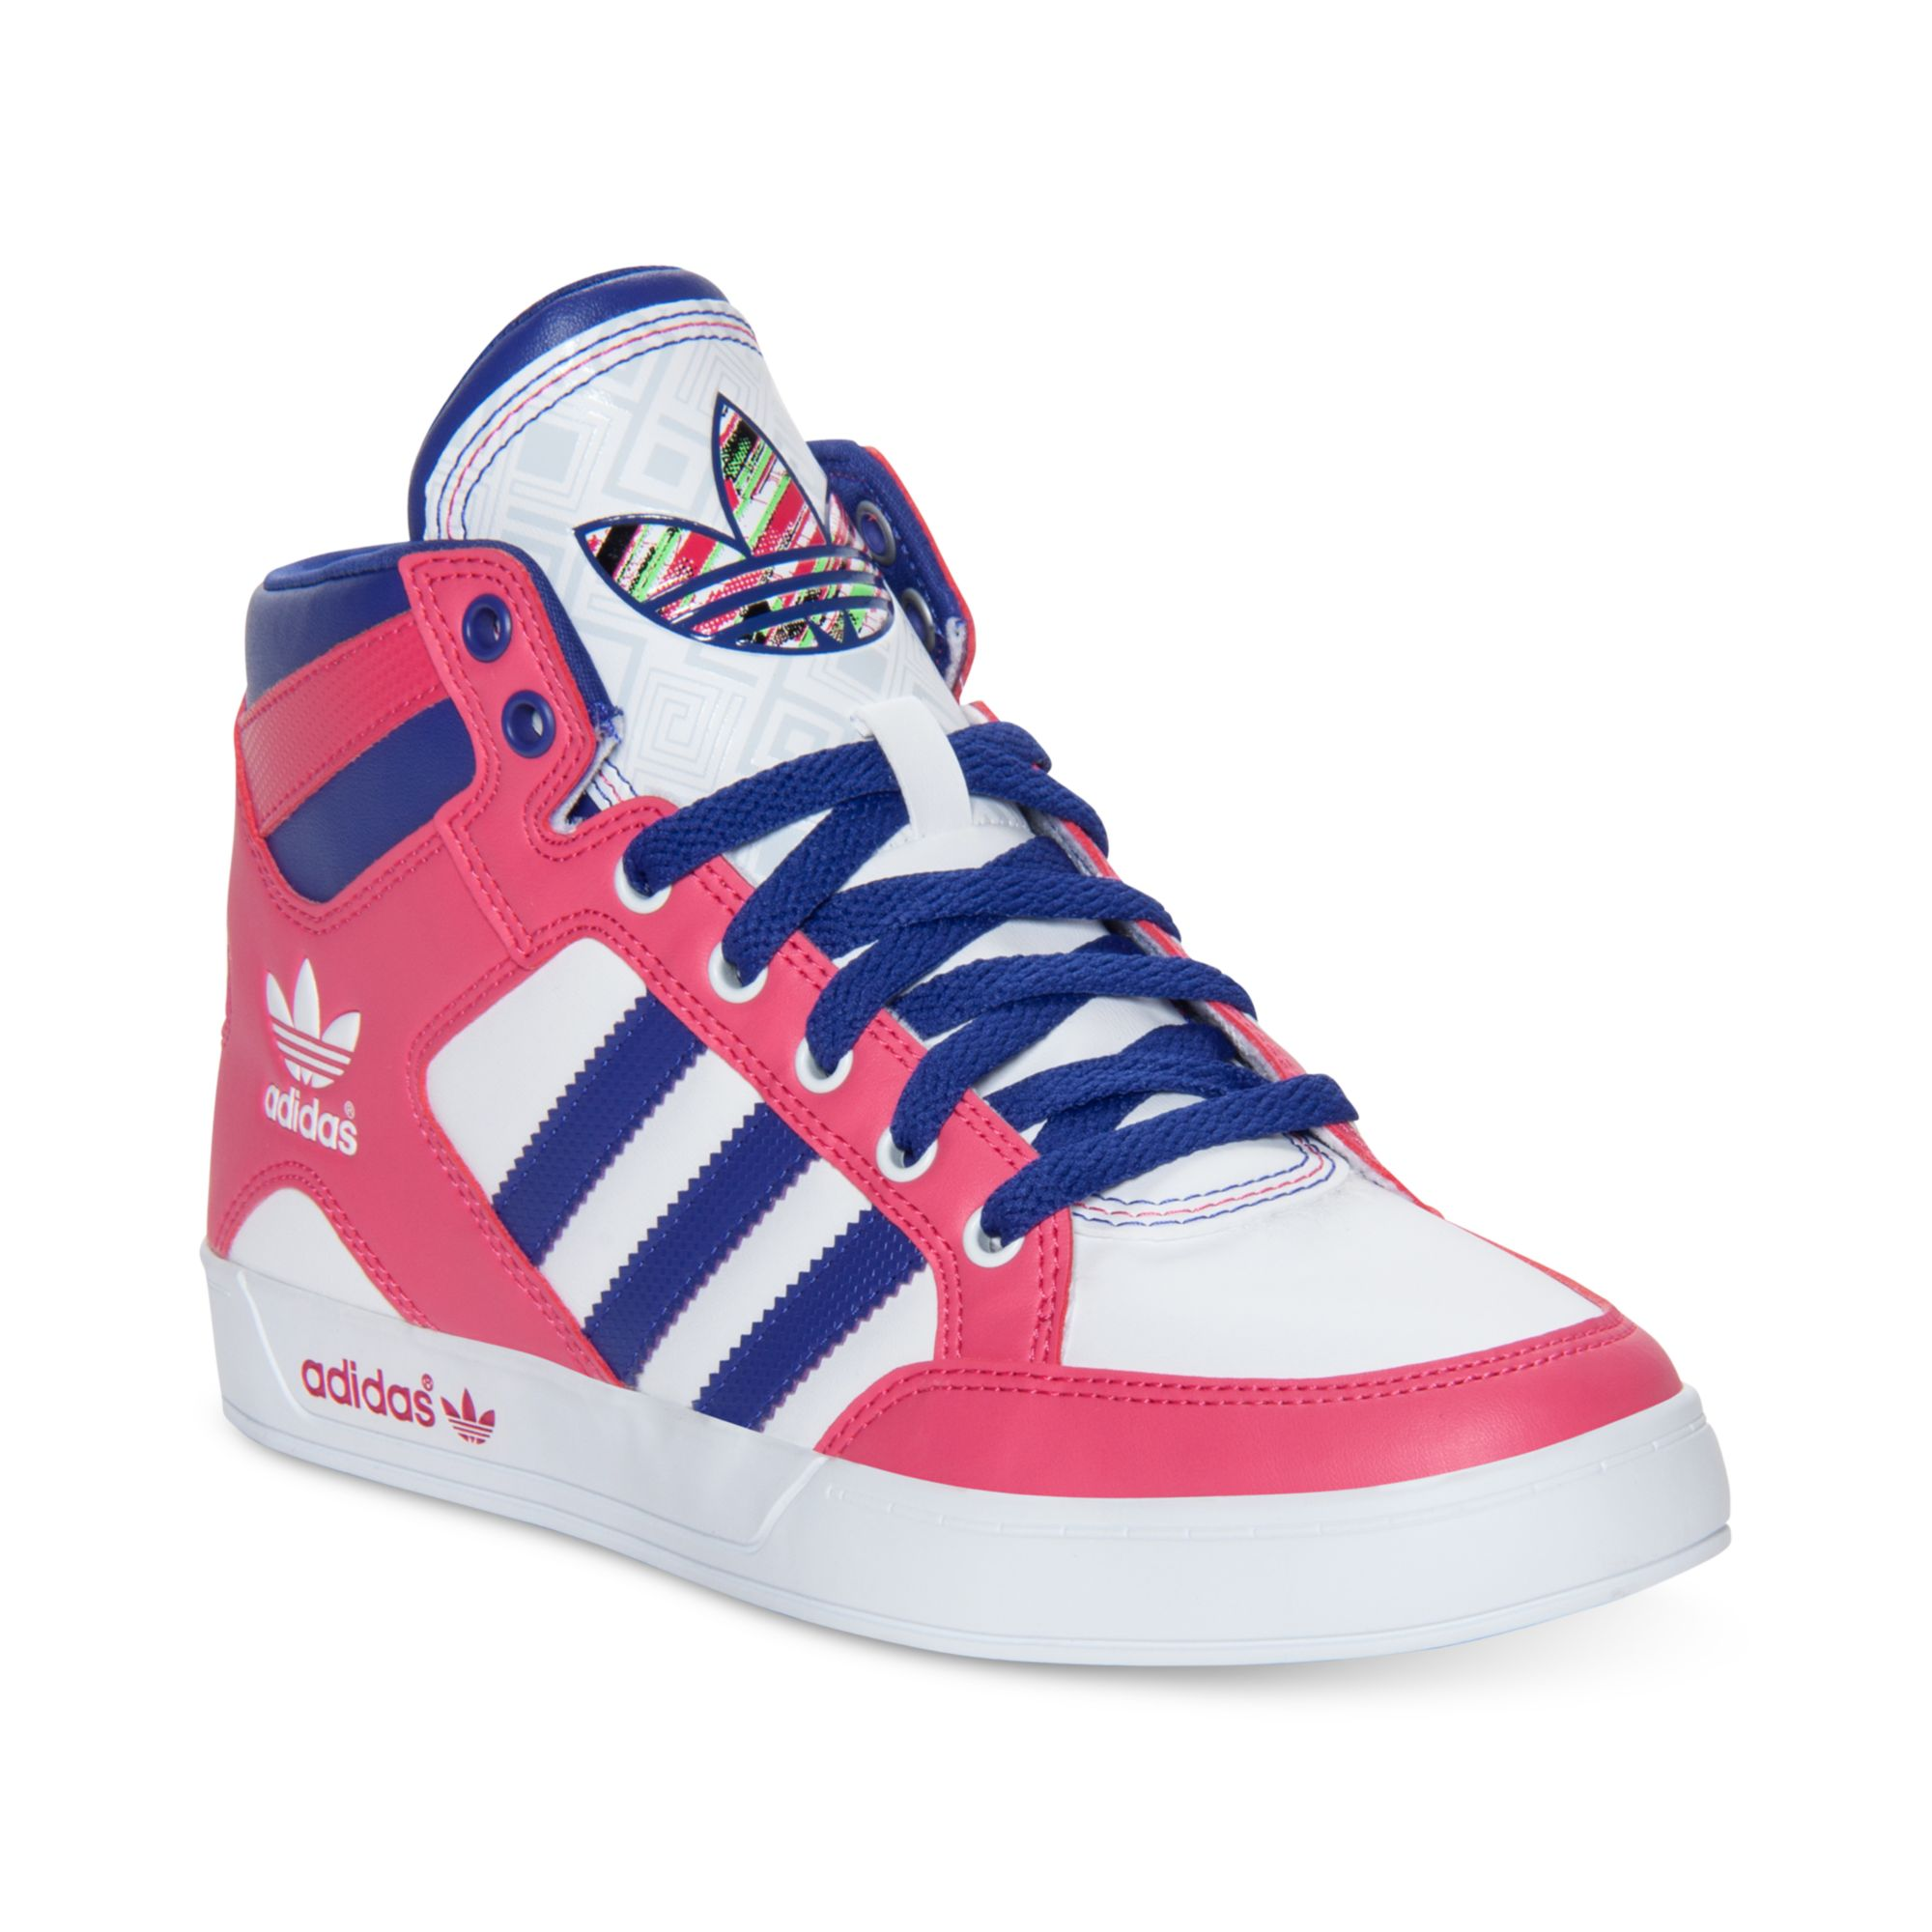 Lyst - adidas Hardcourt Hi Casual Sneakers in Pink c18e3ba89ab32